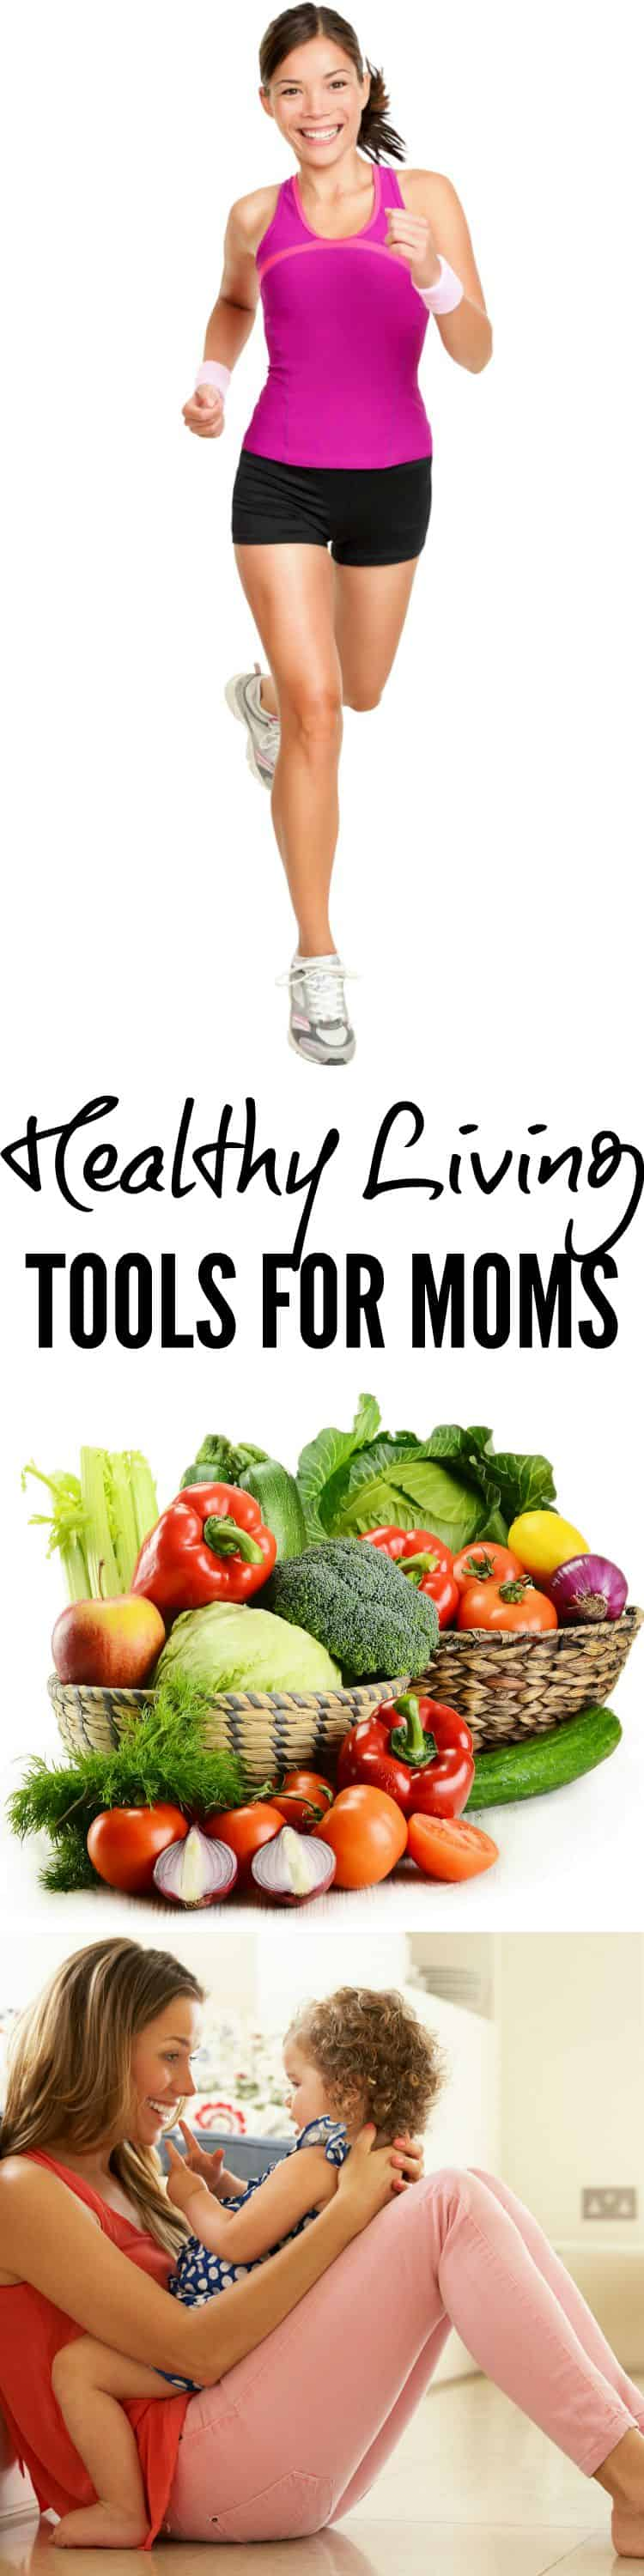 Healthy Living Tools for Moms